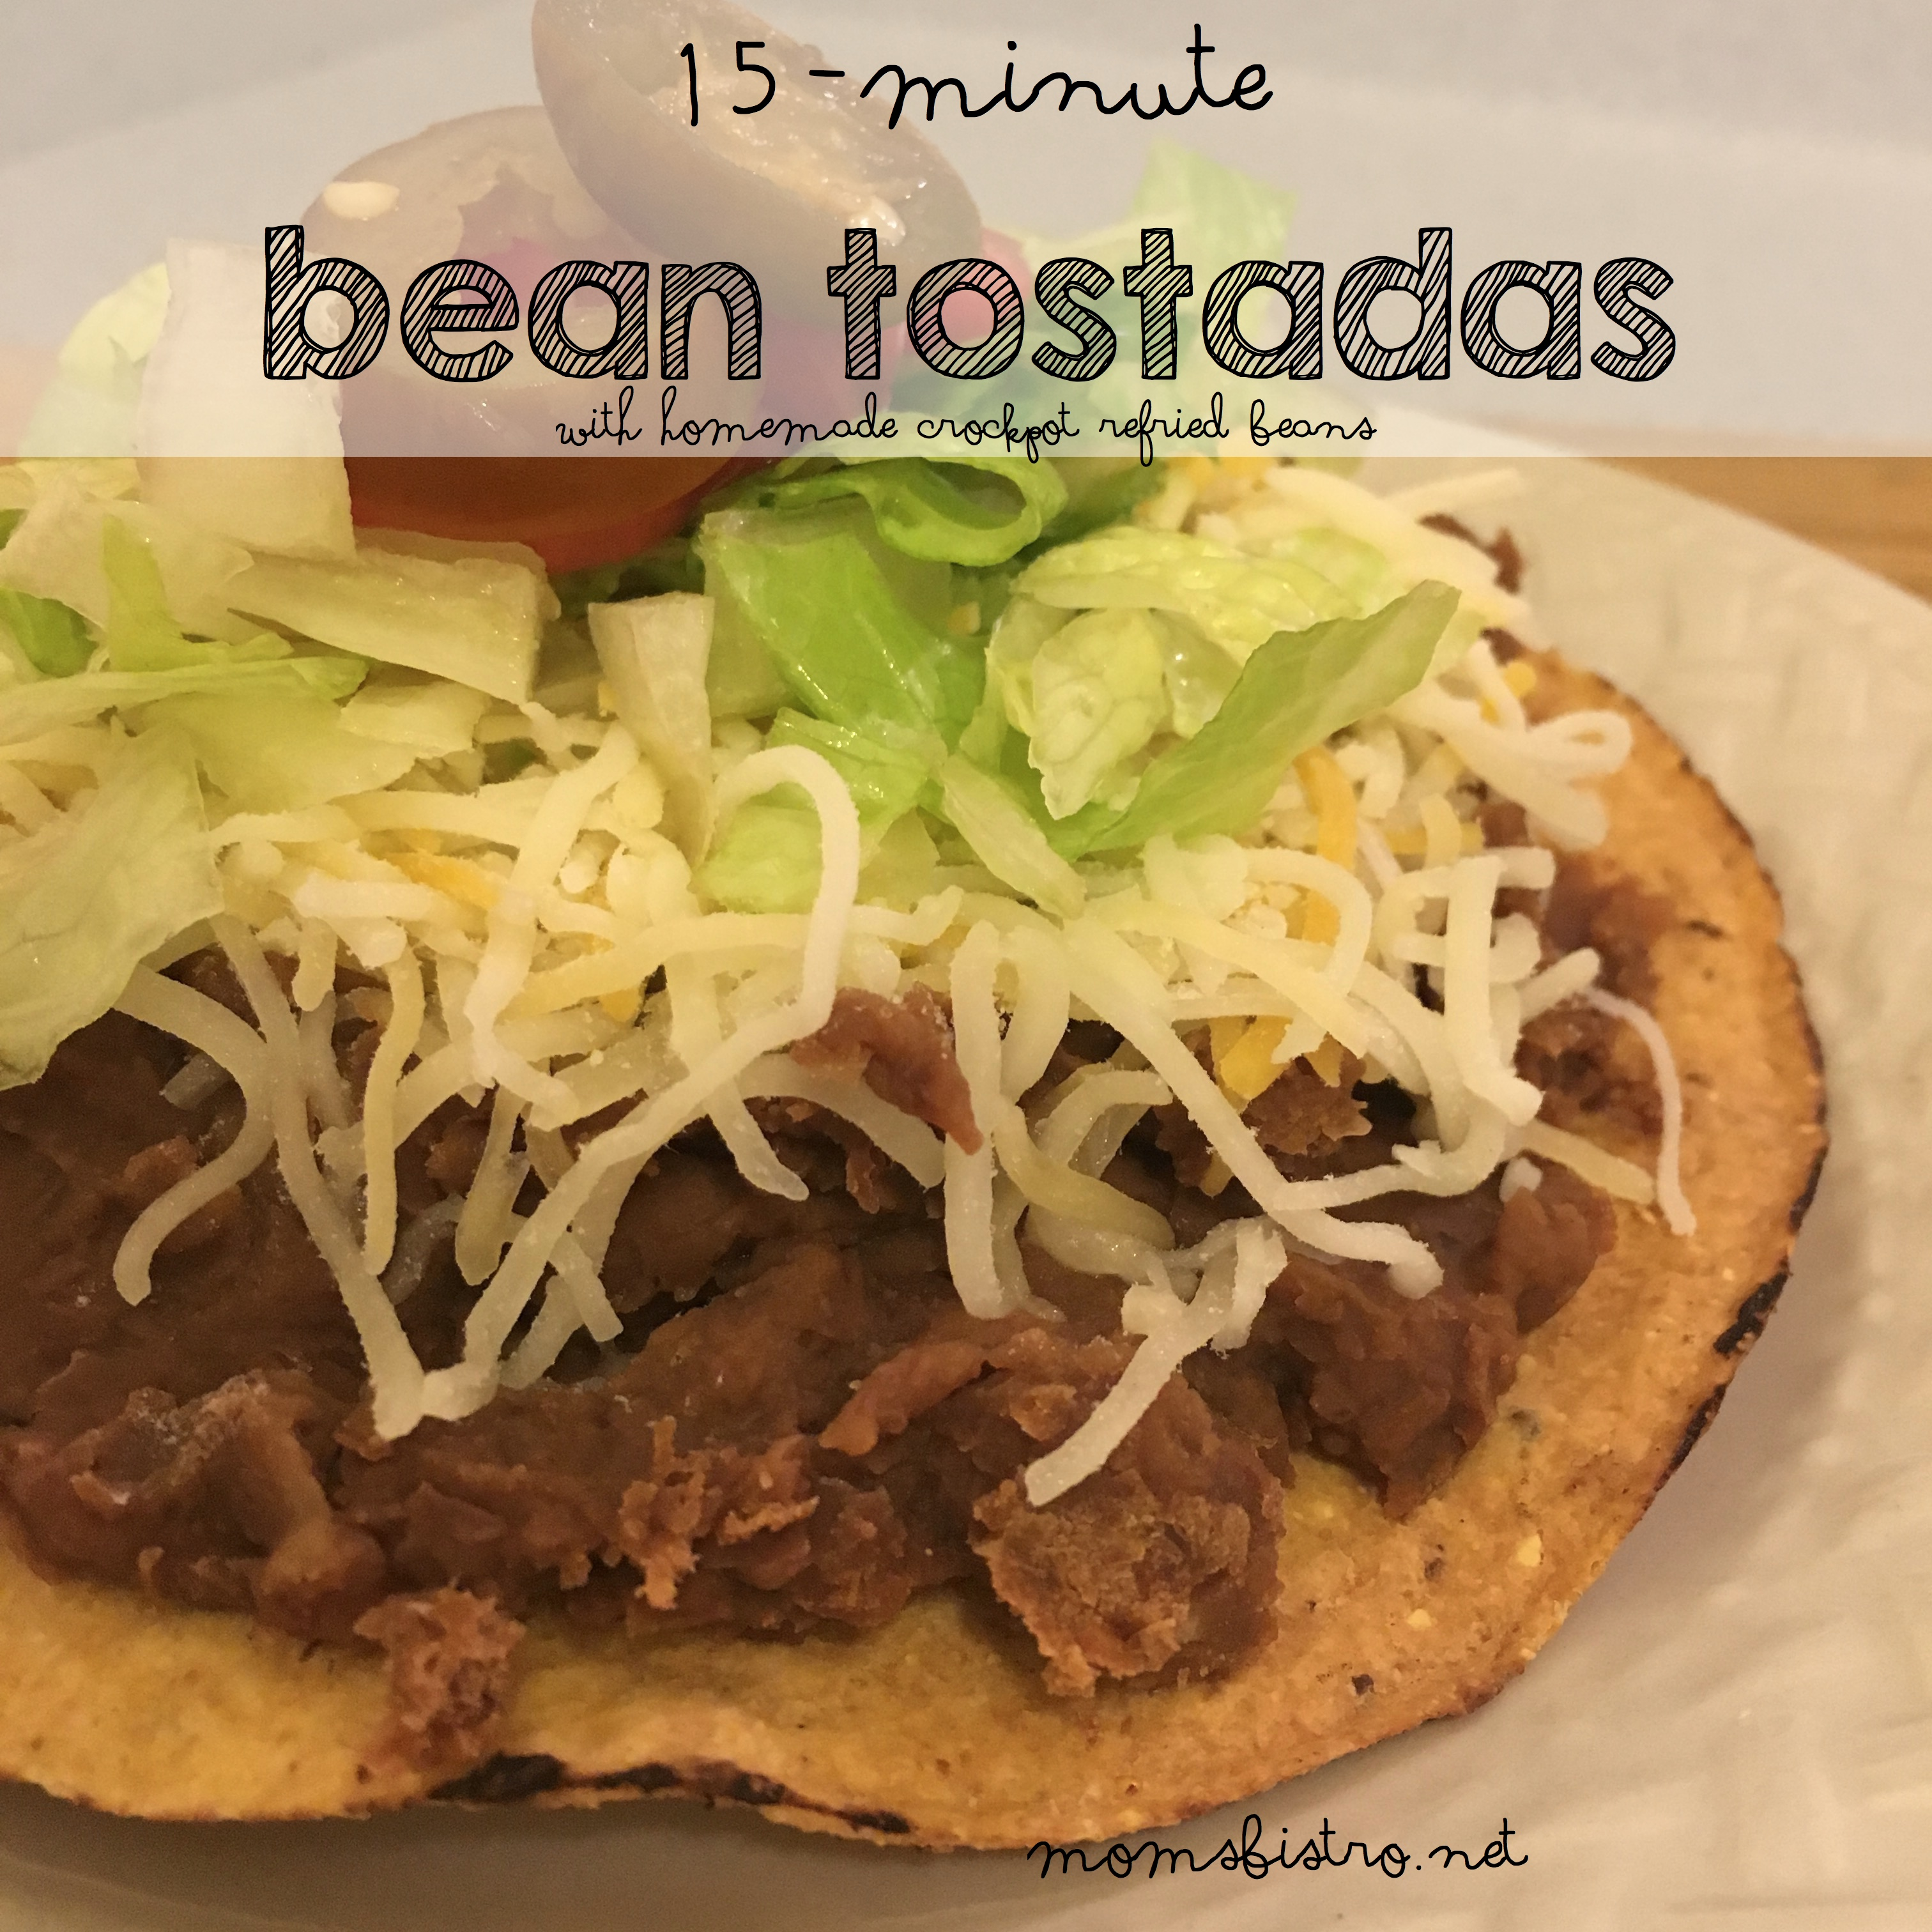 The Easiest Meatless Monday Recipe Ever – 15-Minute Bean Tostadas Recipe with Homemade CrockPot Refried Beans